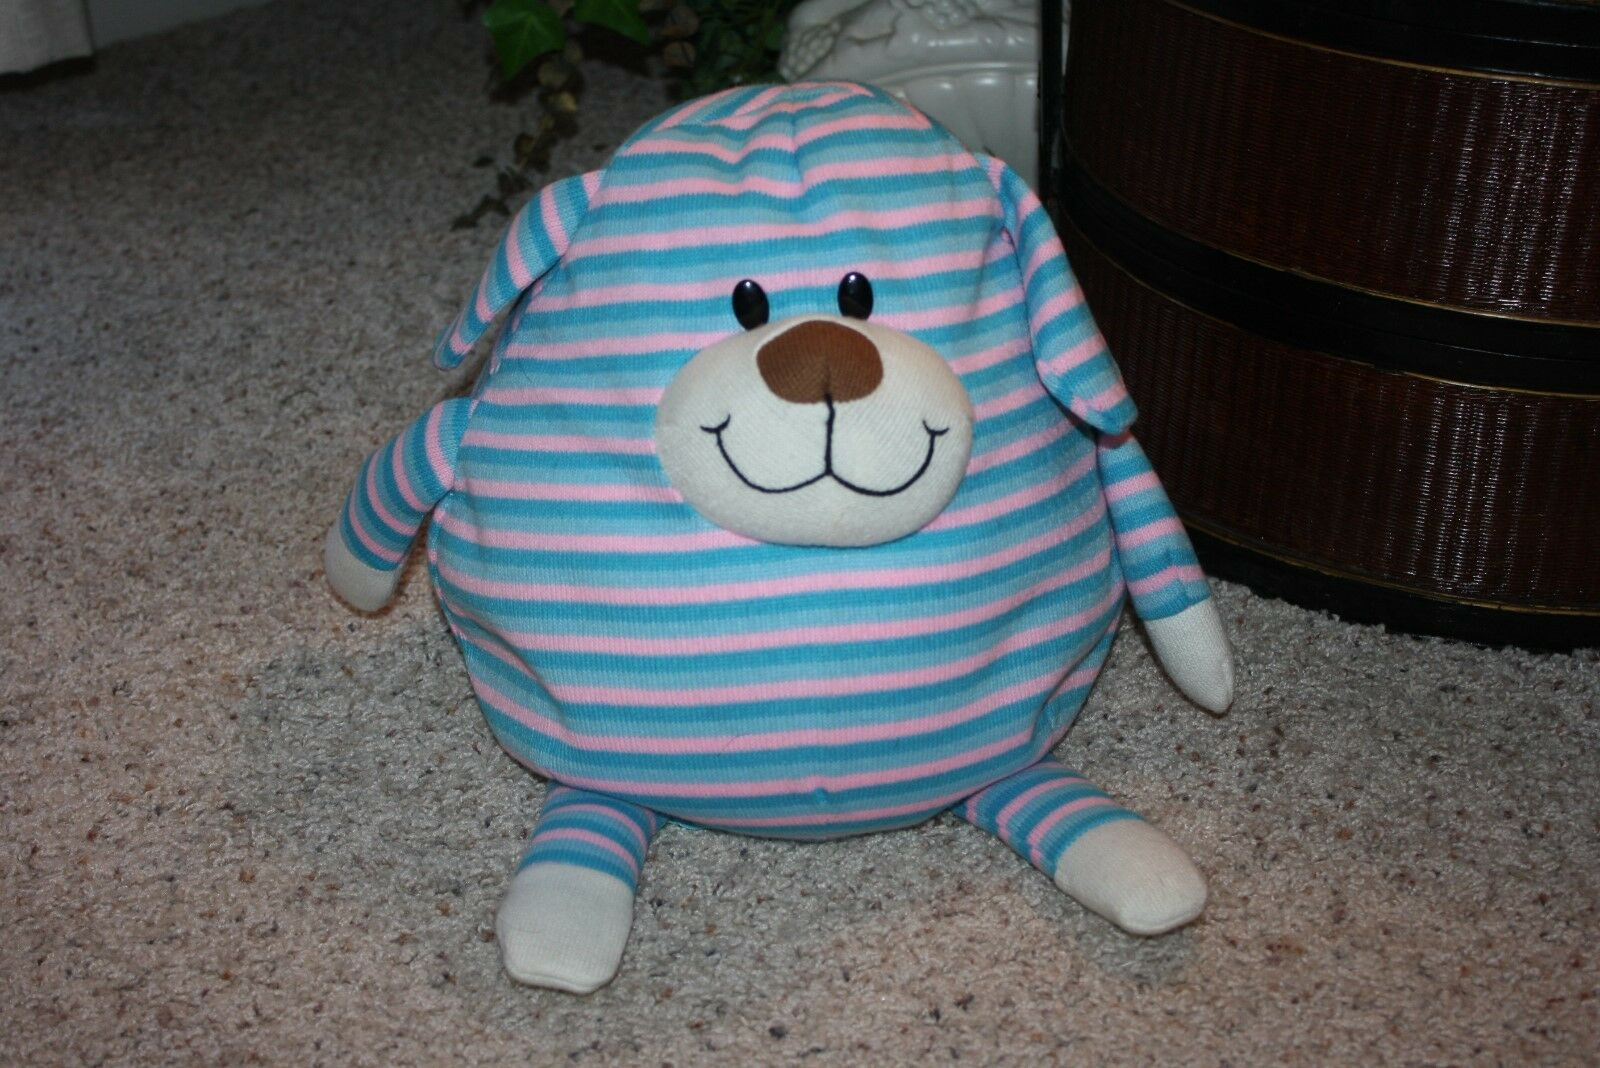 Jay at Play Belly MUSHABLE Pot Belly Play Puppy Dog Pink Blau Microbead Pillow Toy 11x9